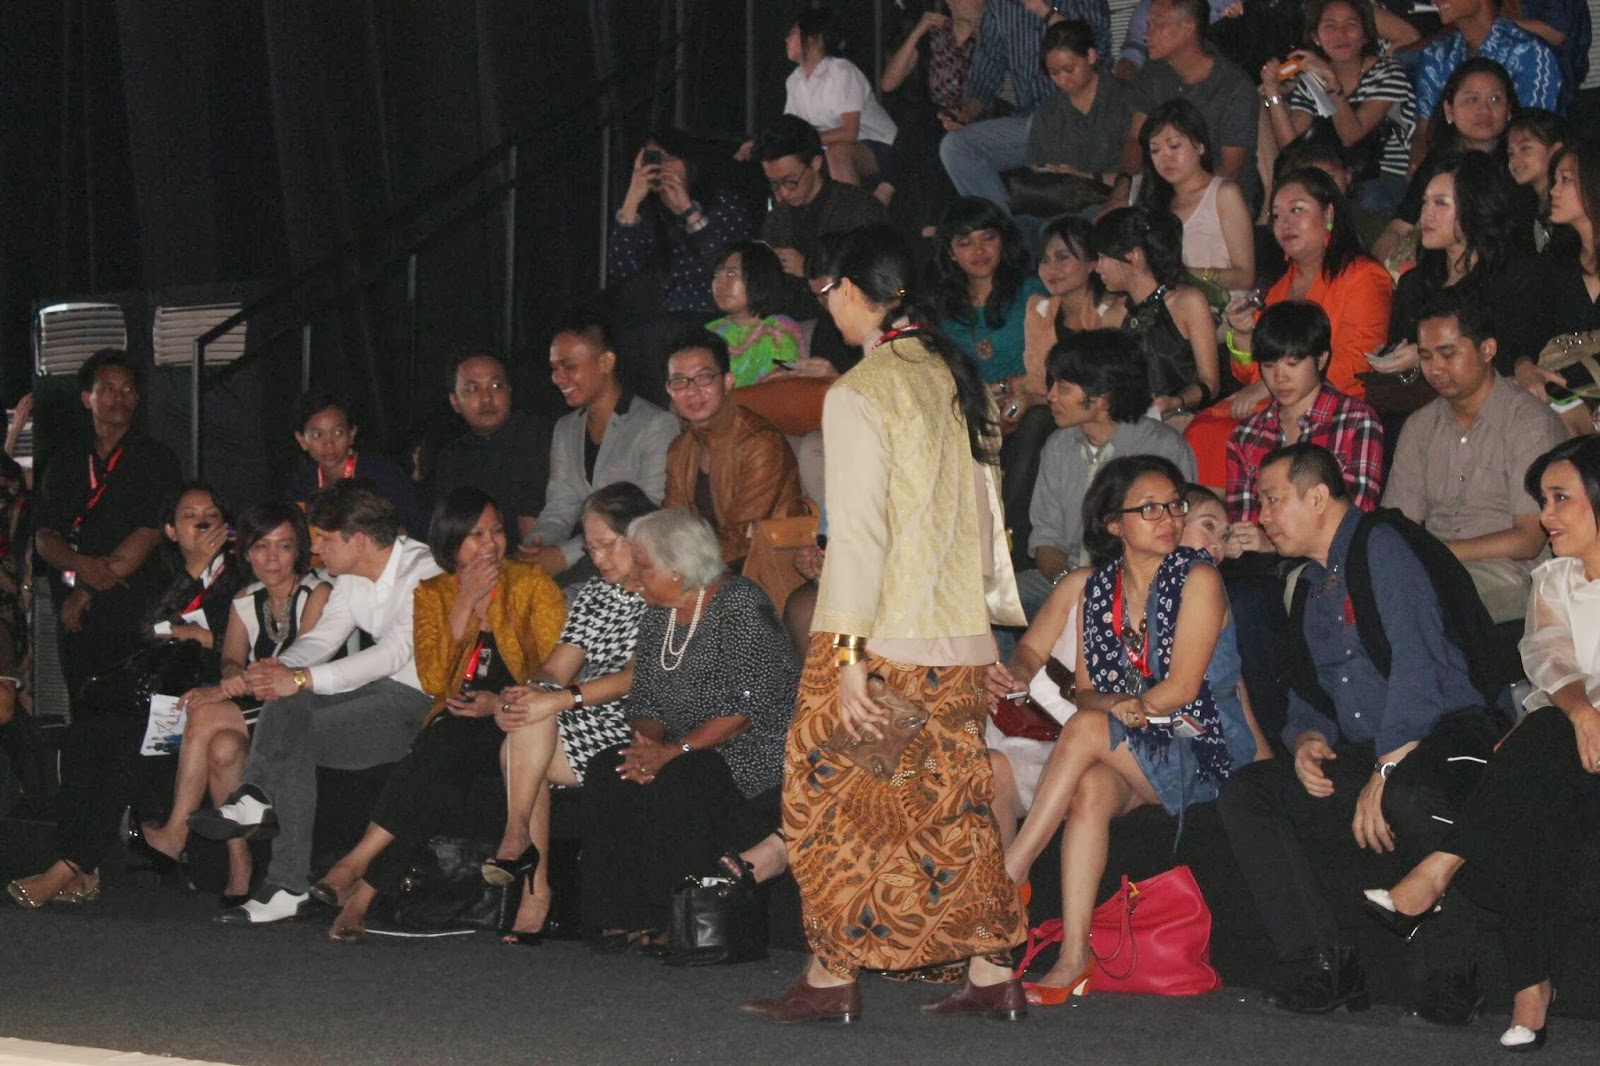 A stack of macaroons waiting for jakarta fashion week 2014 the crowd from last jfw 2013 stopboris Images